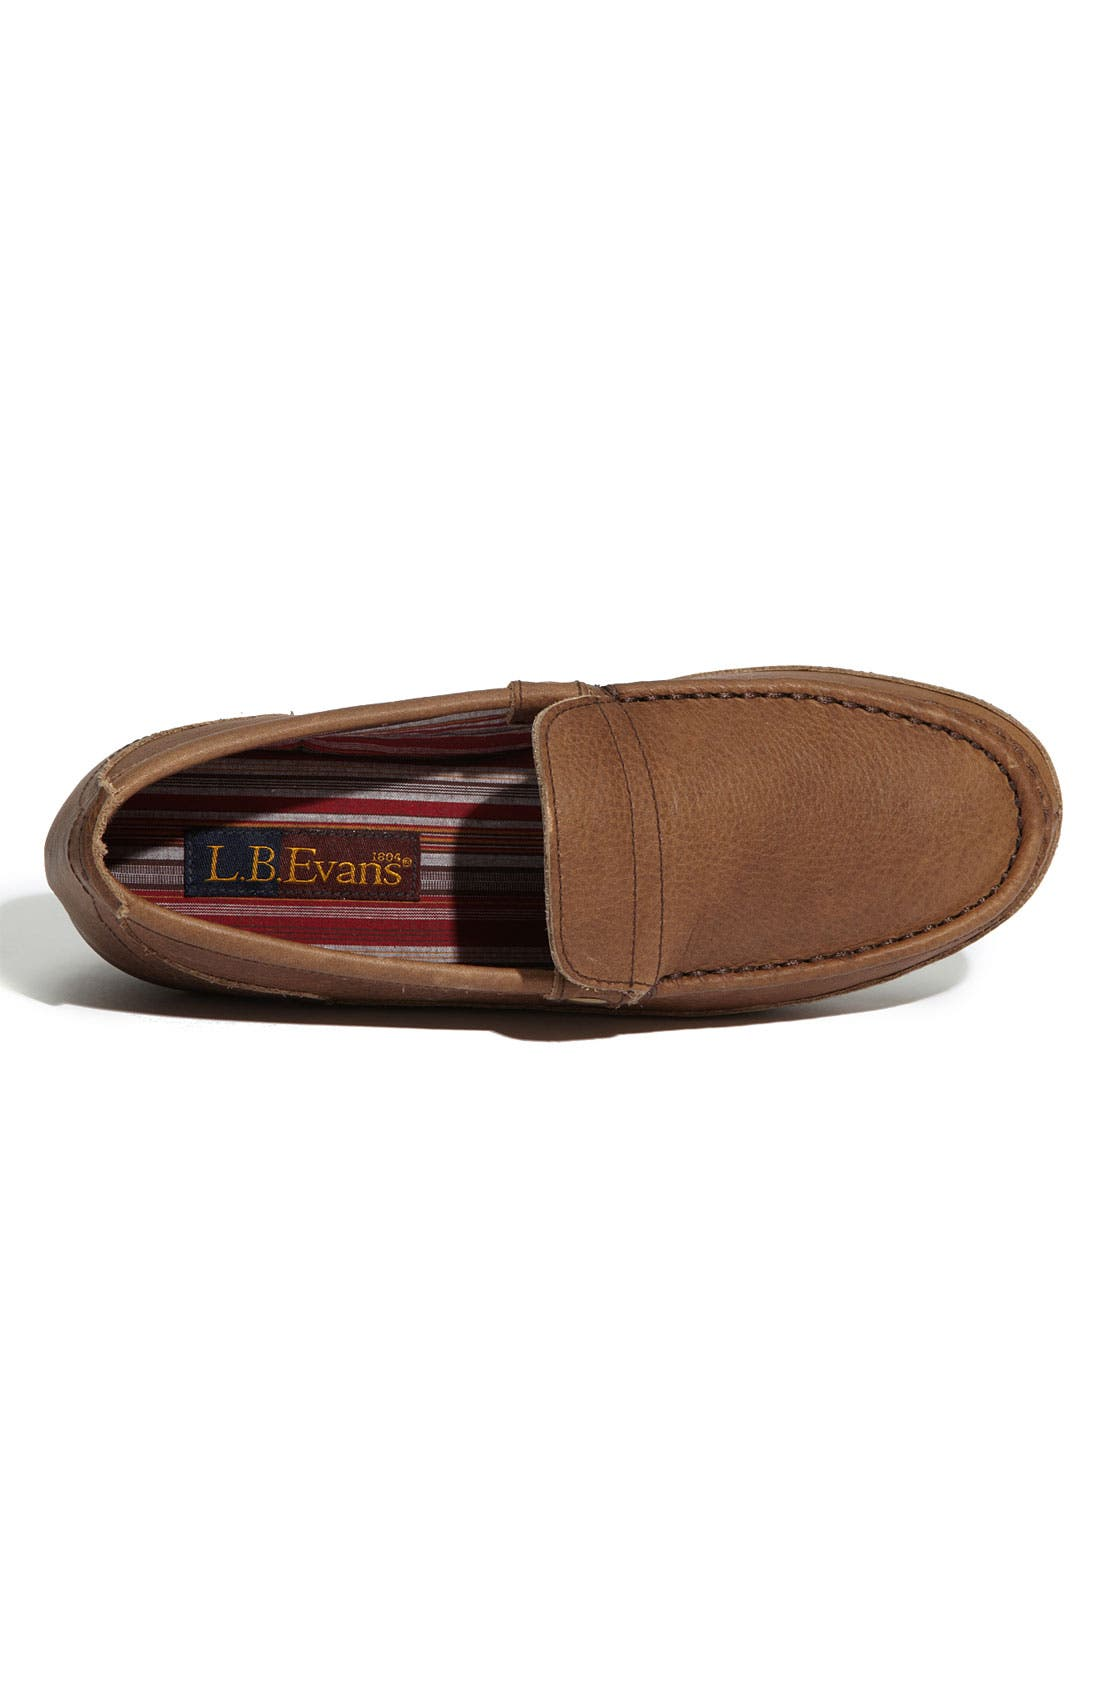 Alternate Image 2  - L.B. Evans 'Finn' Slipper (Online Only)